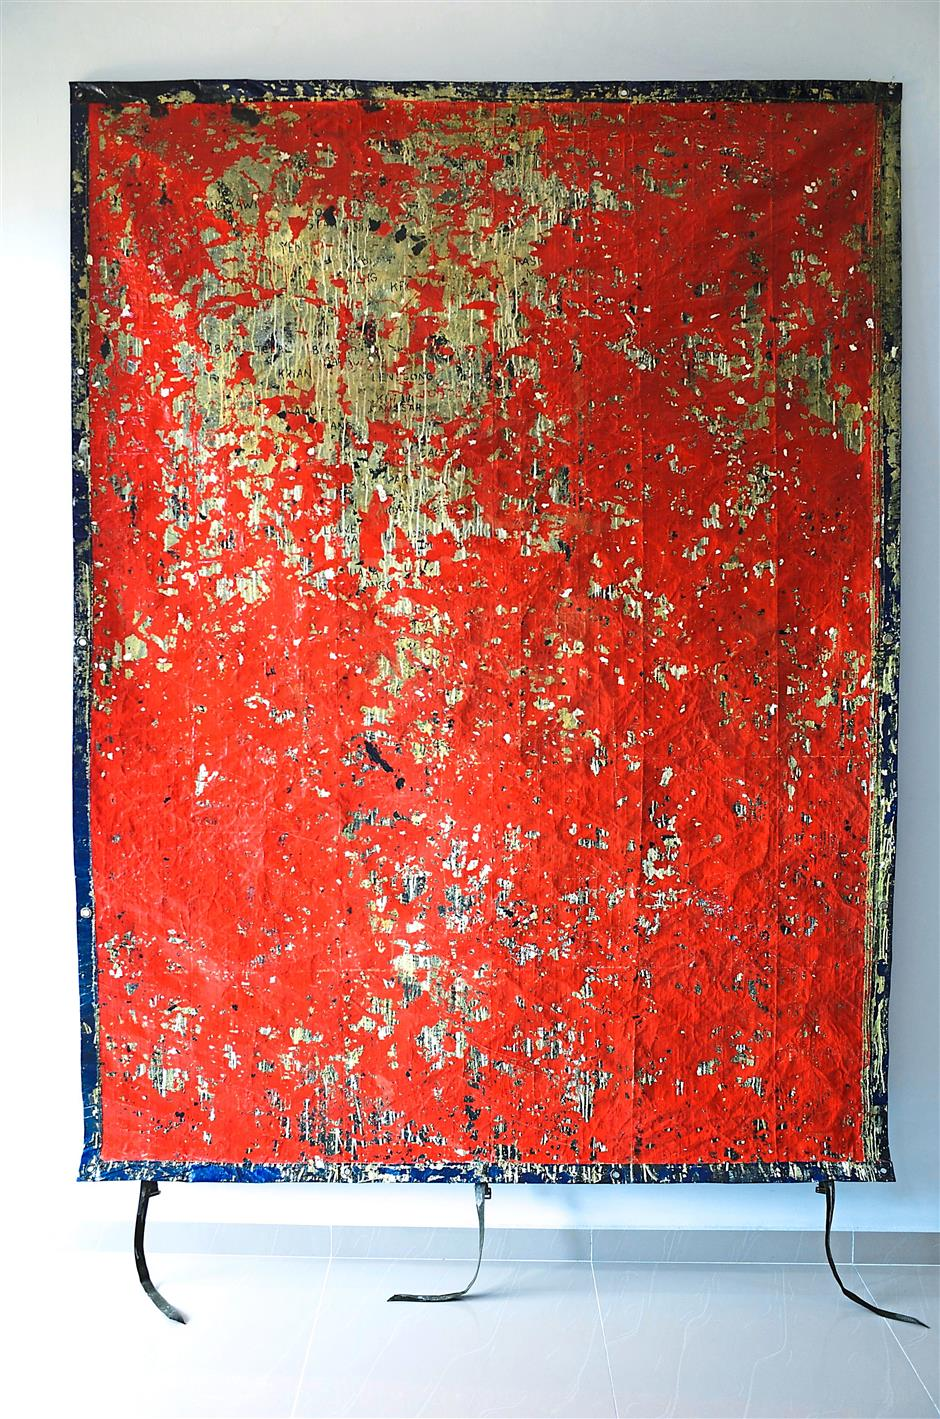 Chong Kim Chiews Boundary Fluidity will be featured at Wei-Ling Contemporary at The Gardens Mall.